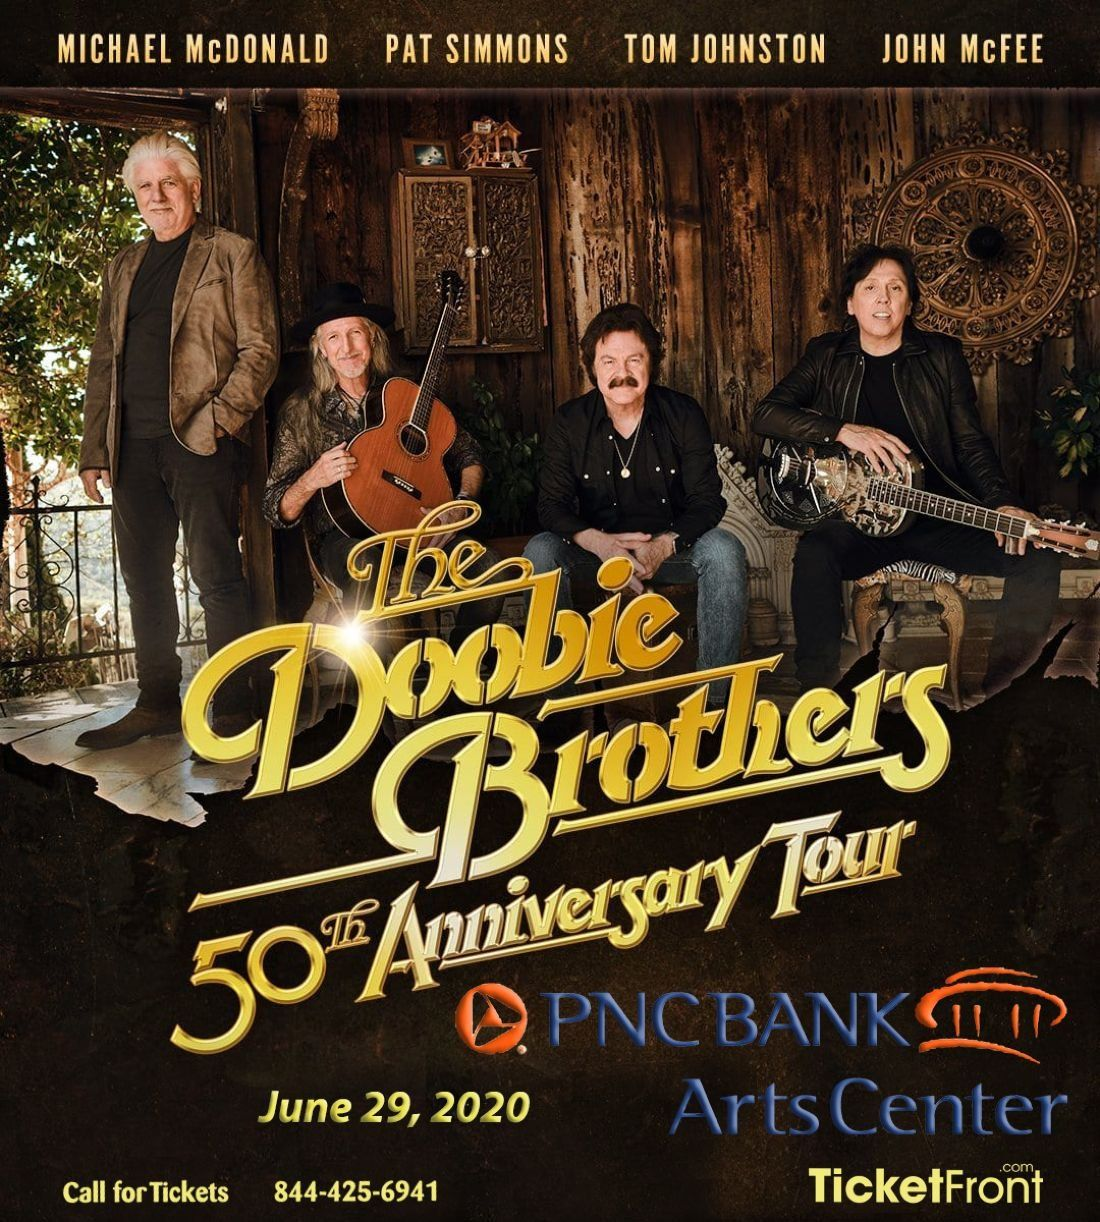 The Doobie Brothers & Michael McDonald at PNC Bank Arts Center Holmdel NJ